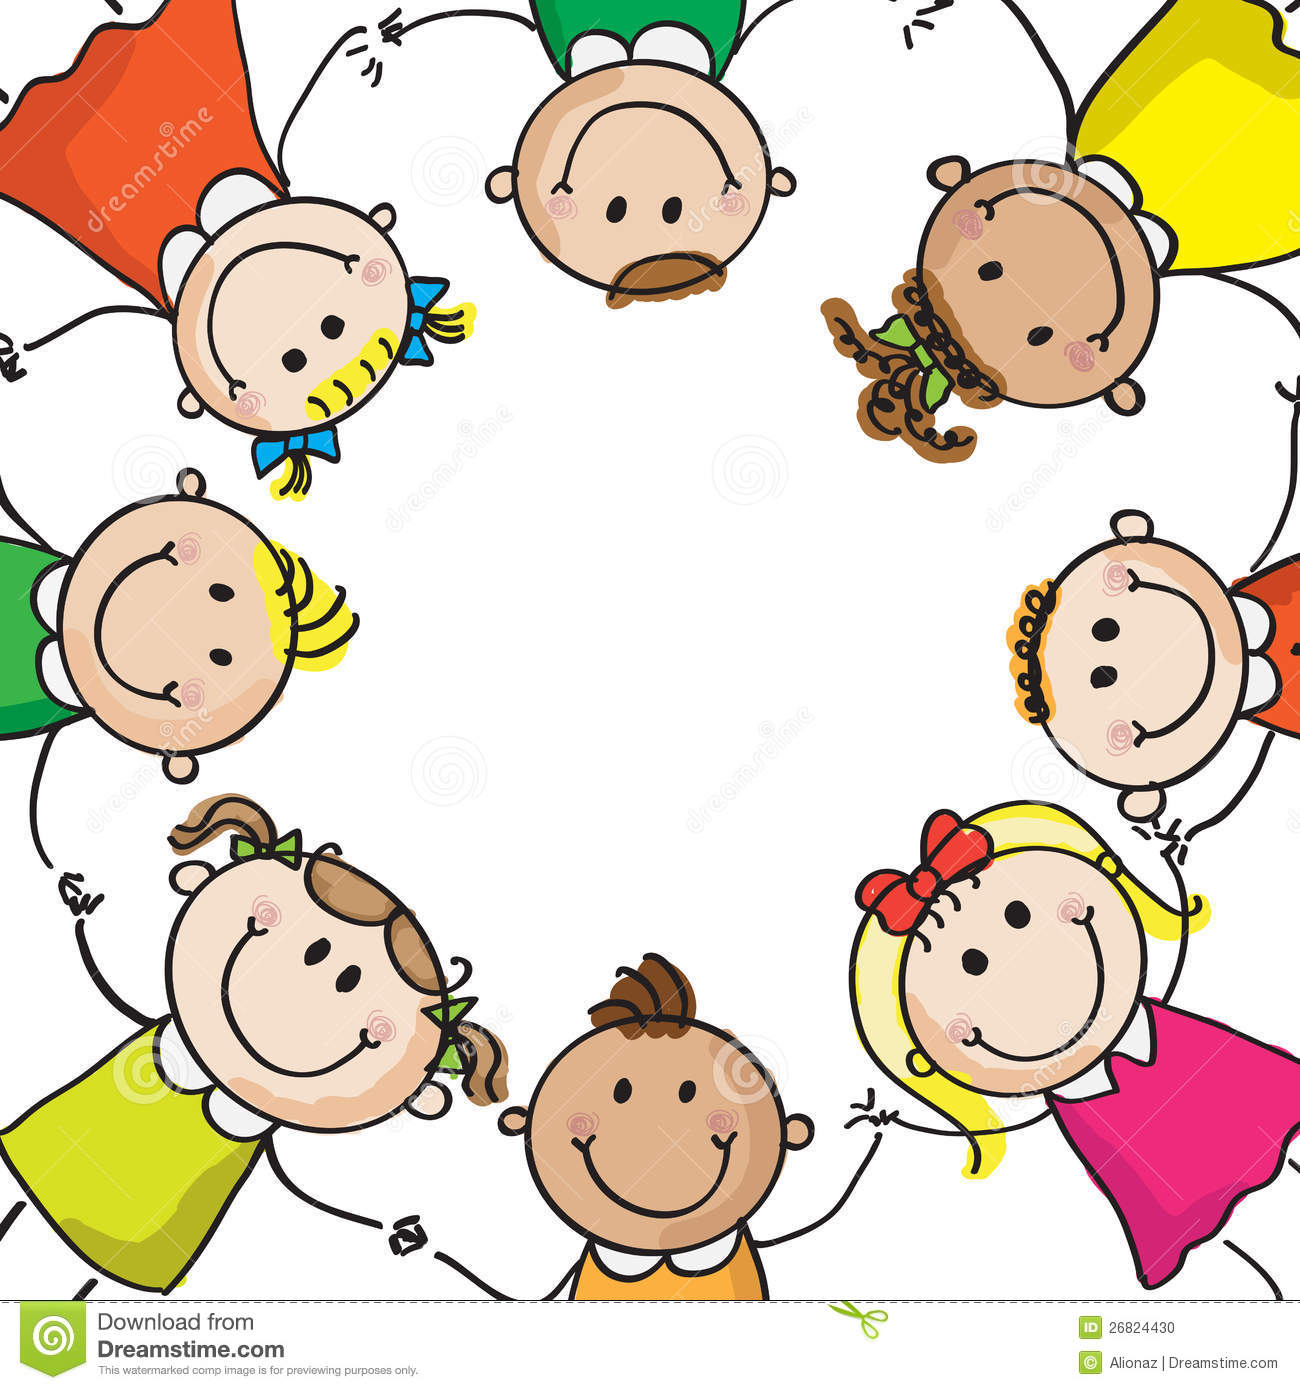 Kids Holding Hands In A Circle Clipart.